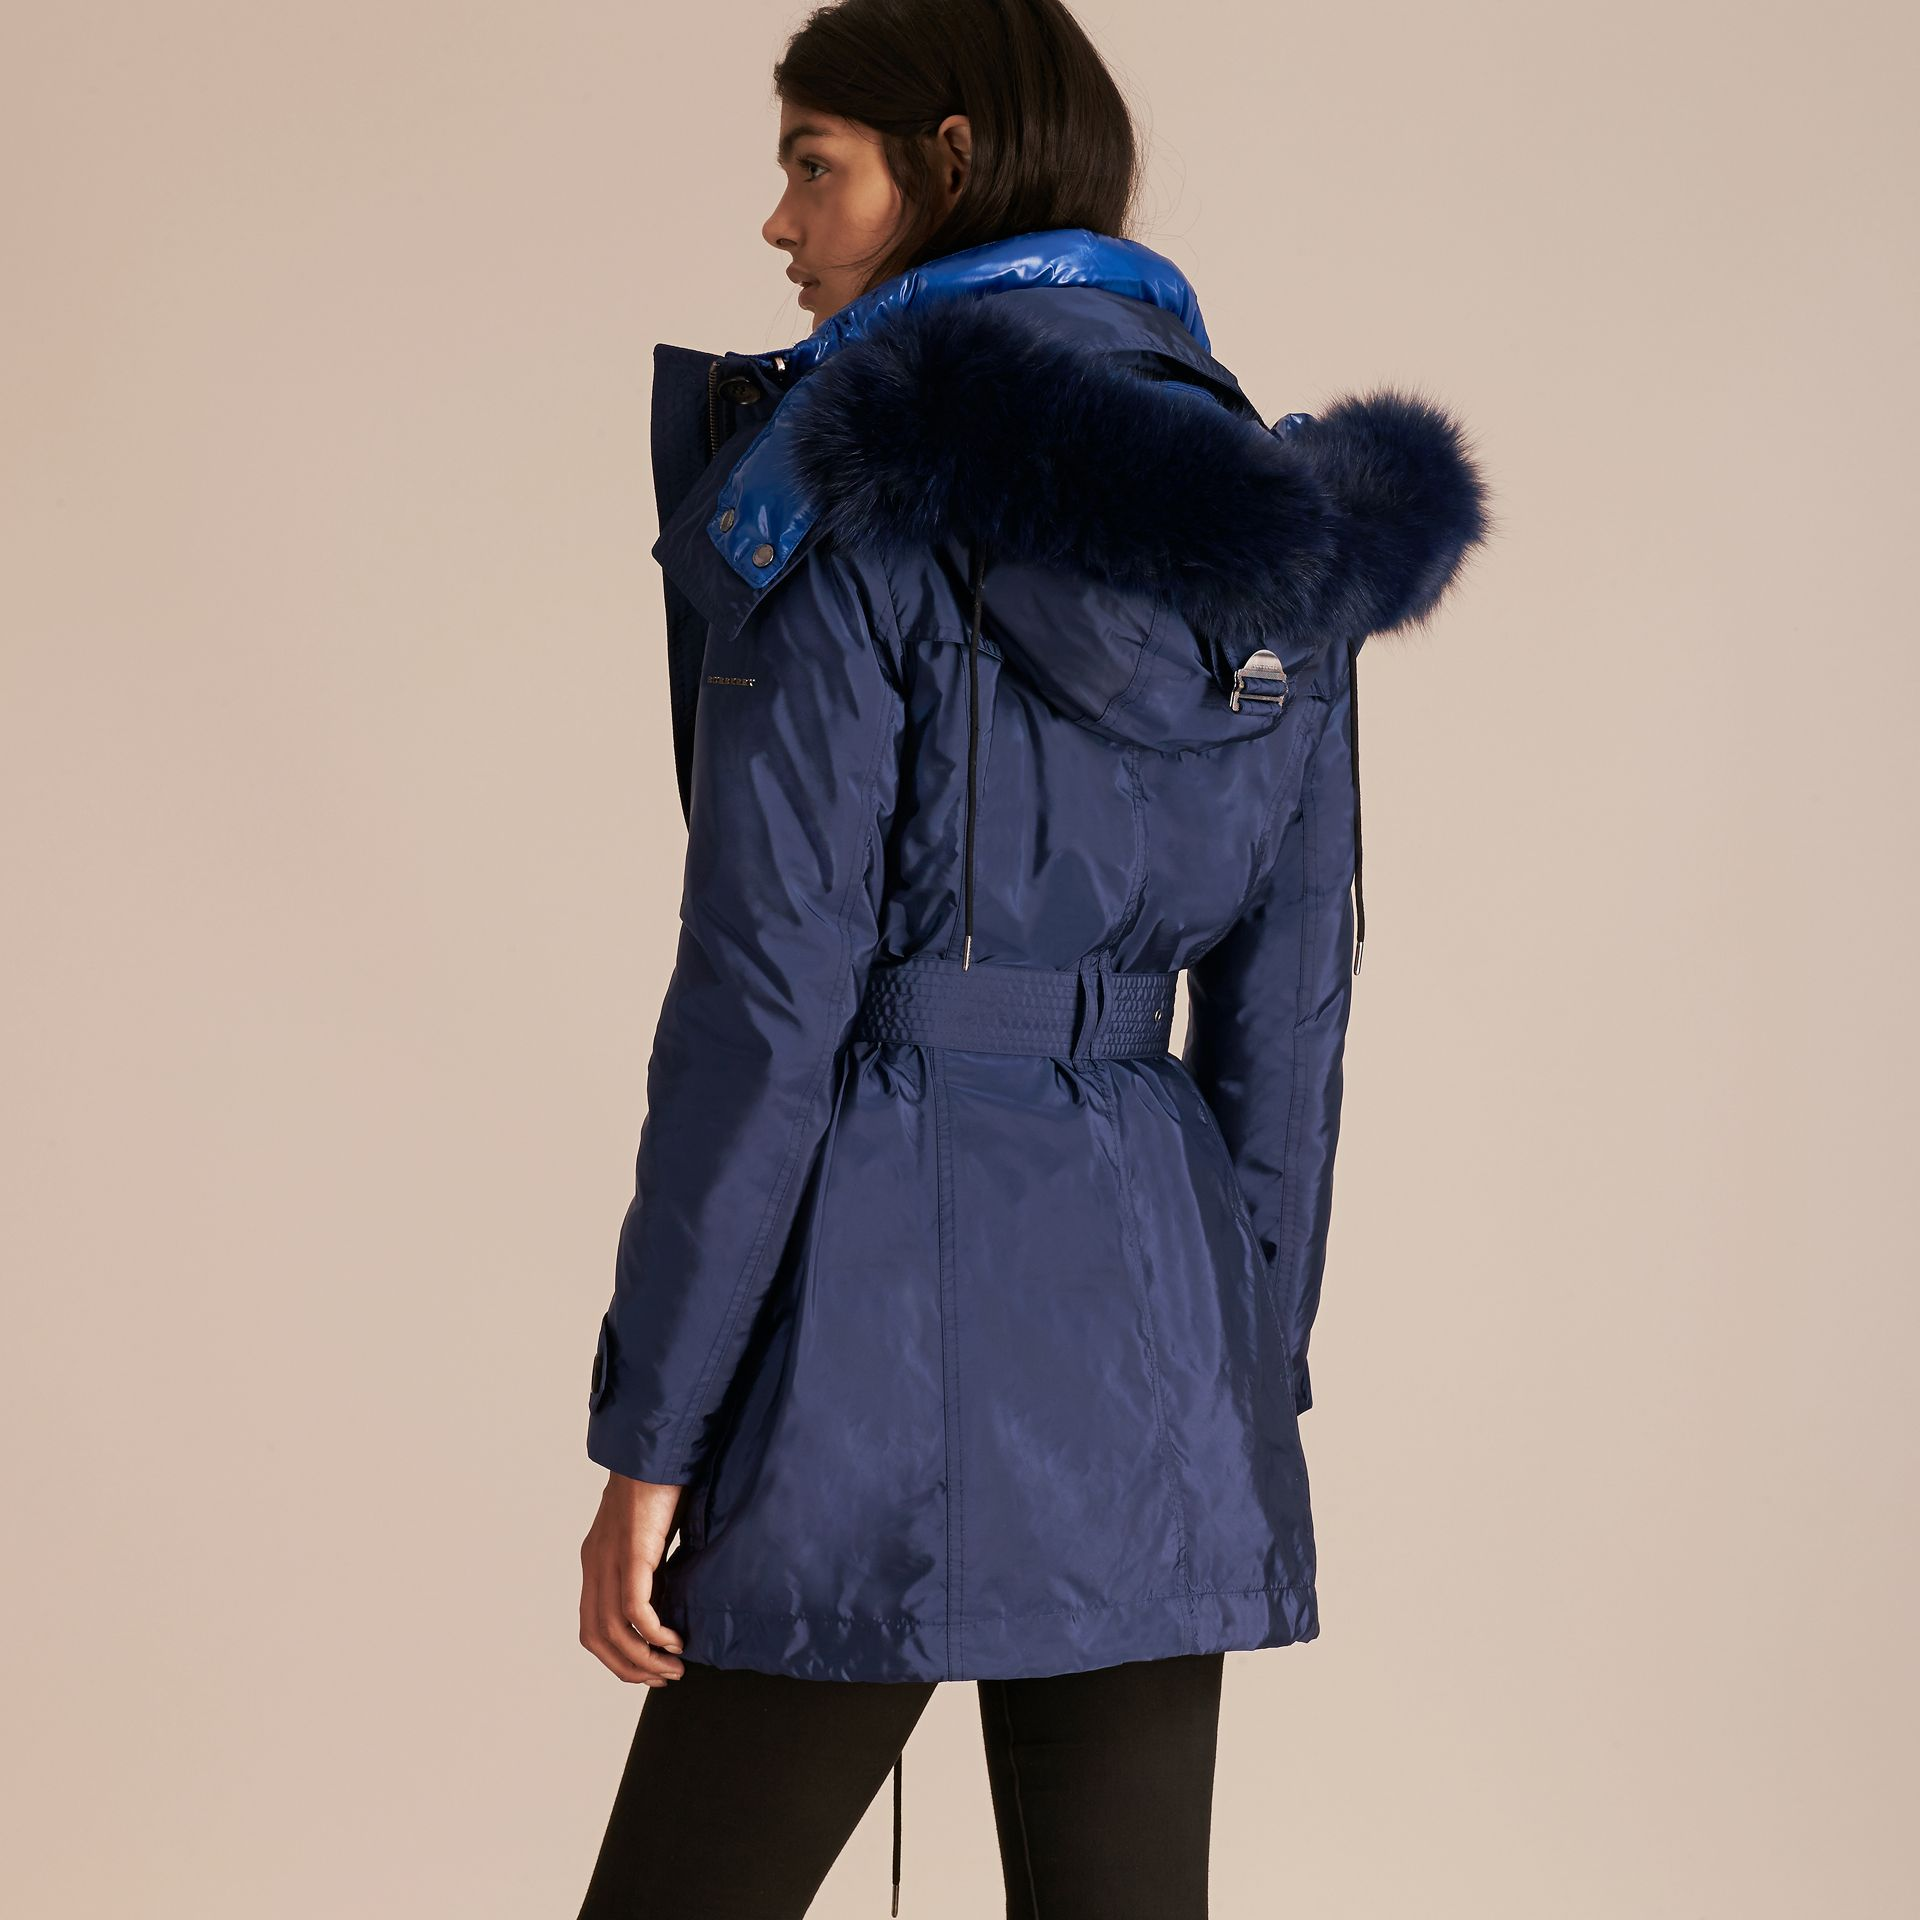 Fur-trimmed Parka with Detachable Down-filled Jacket in Ink Blue - gallery image 7